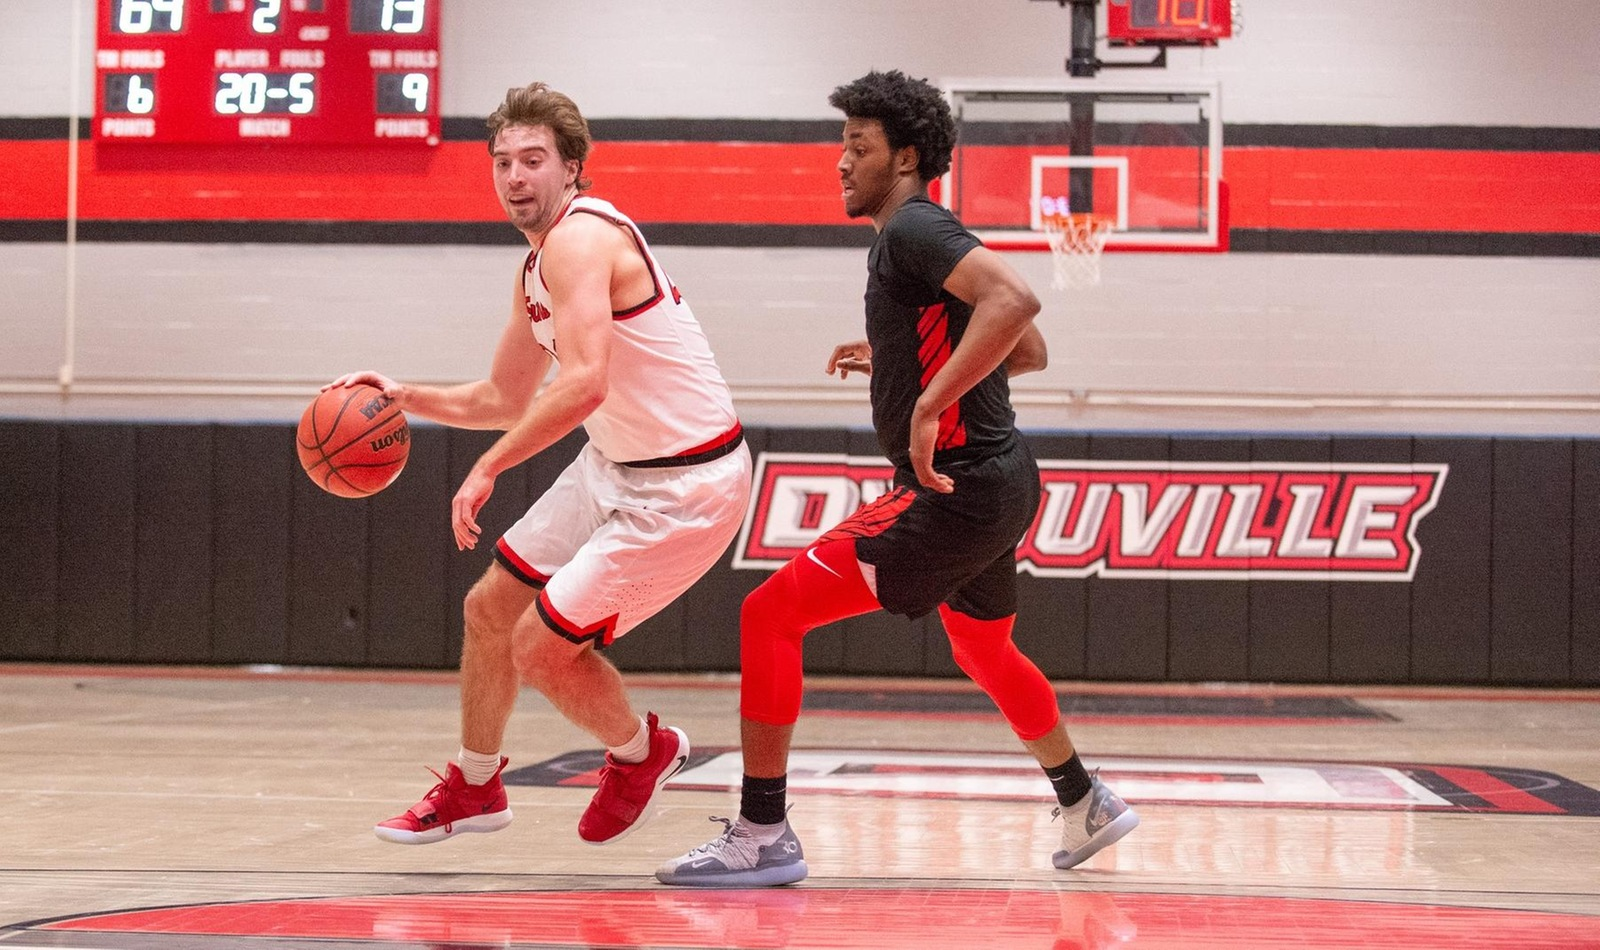 D'Youville Falls to Greensburg on the Road in Men's Basketball